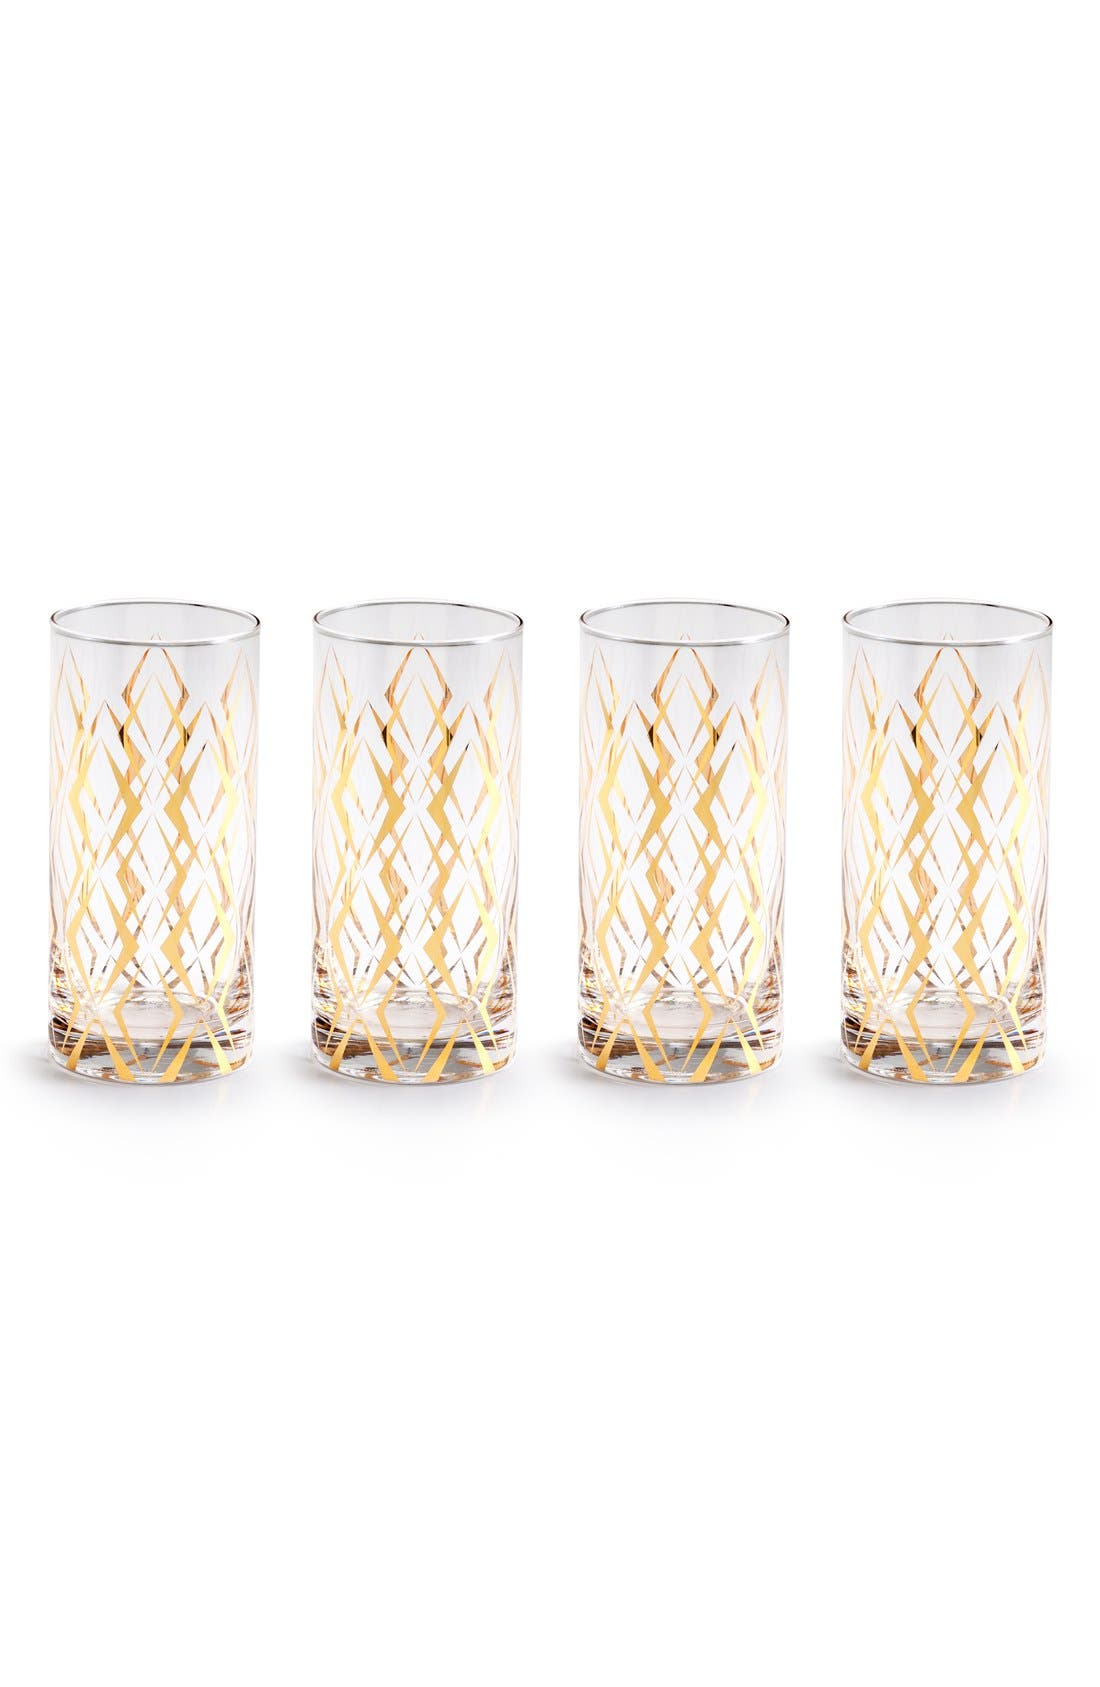 Rosanna 'La Cite' Highball Glasses (Set of 4)